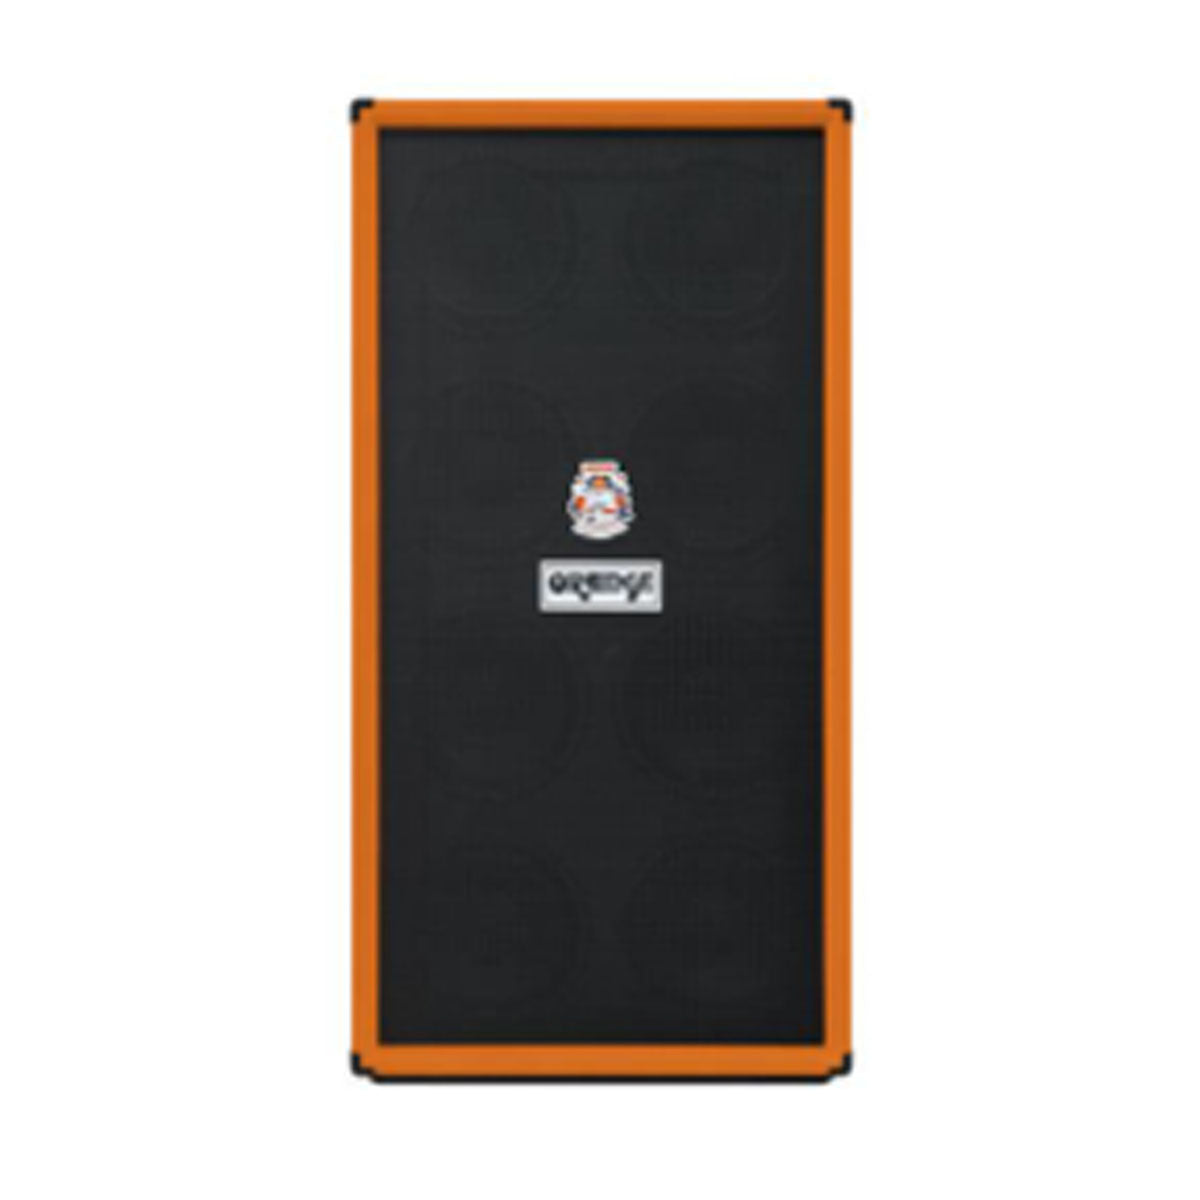 Orange OBC810 Bass Guitar Cabinet 8x10inch Speaker Cab